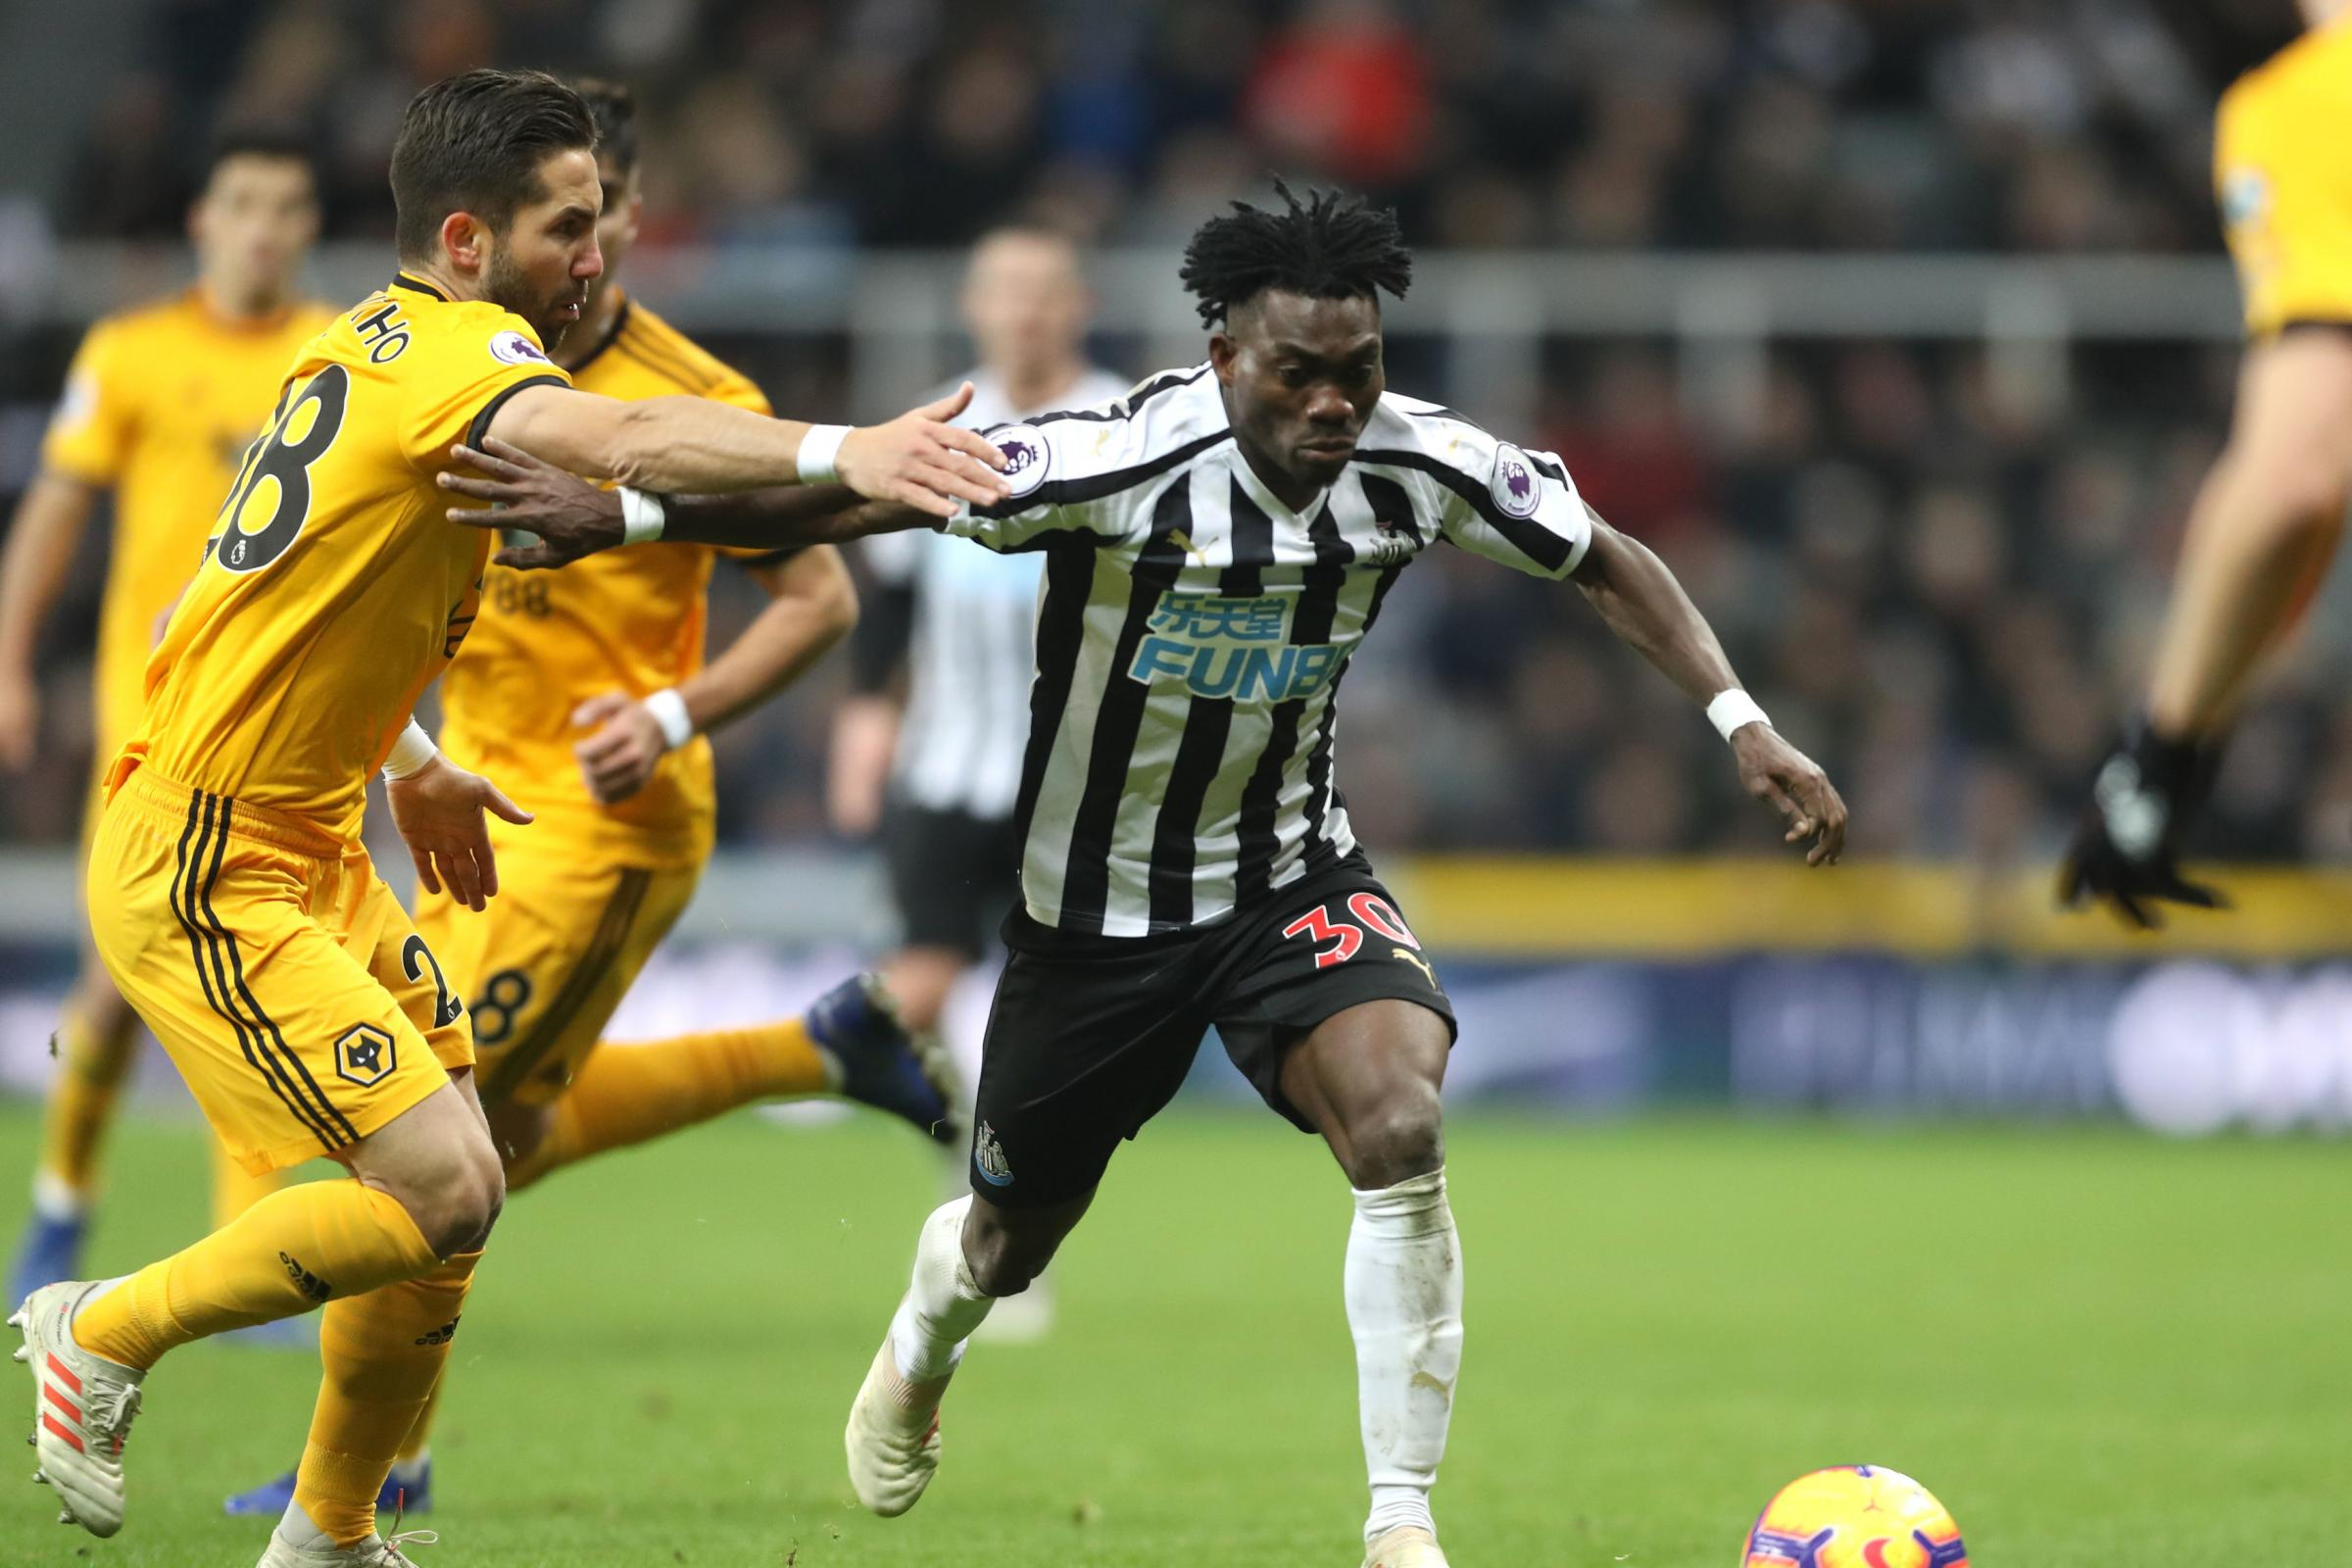 'He didn't play a lot but you could see he had ability' – Smith has respect for former team-mate Christian Atsu